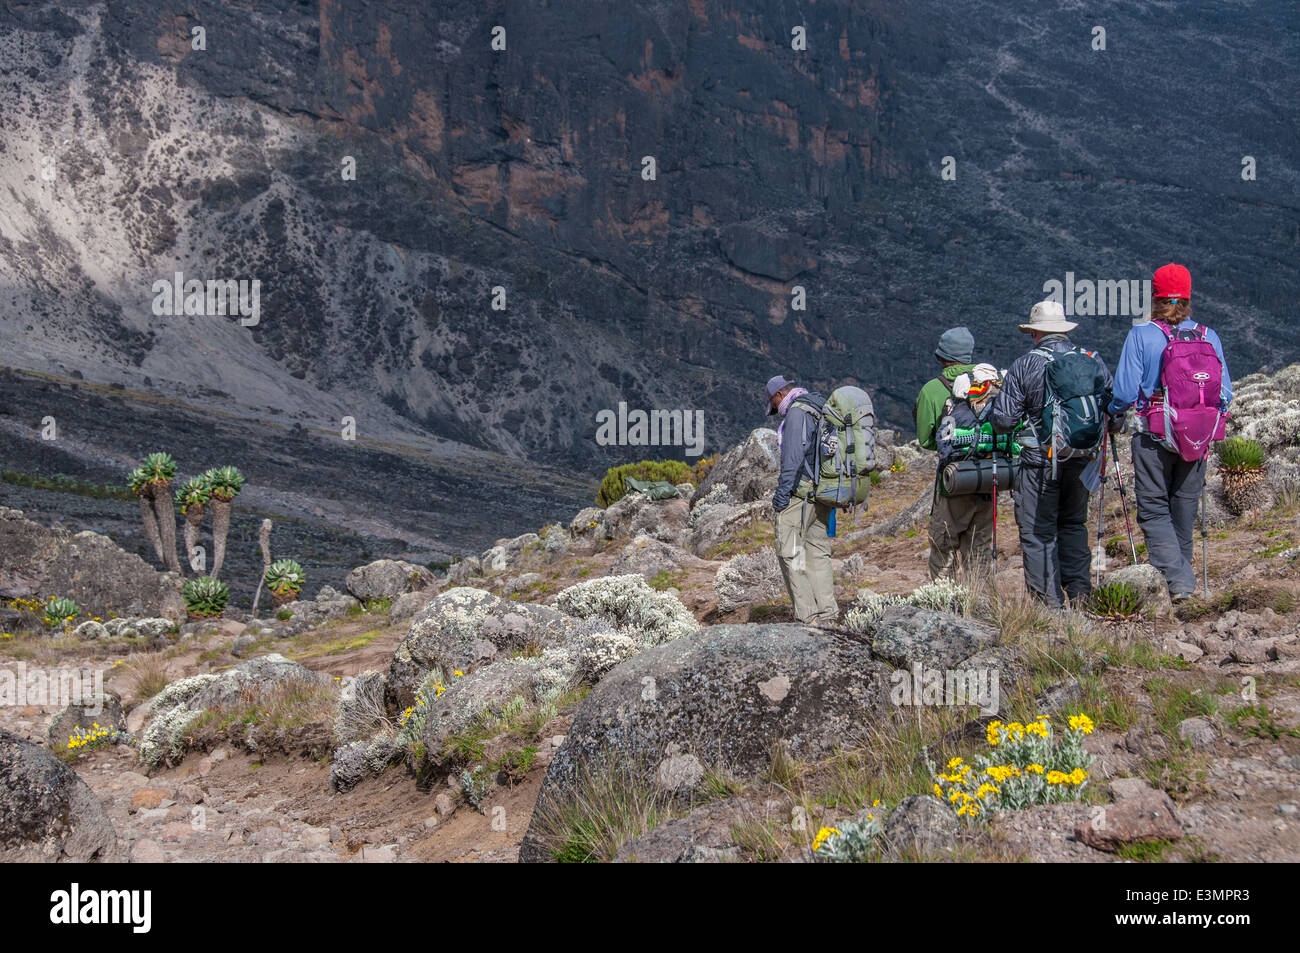 Group moving down to the campsite at Barranco after acclimatising at Lava Tower on Kilimanjaro - Stock Image